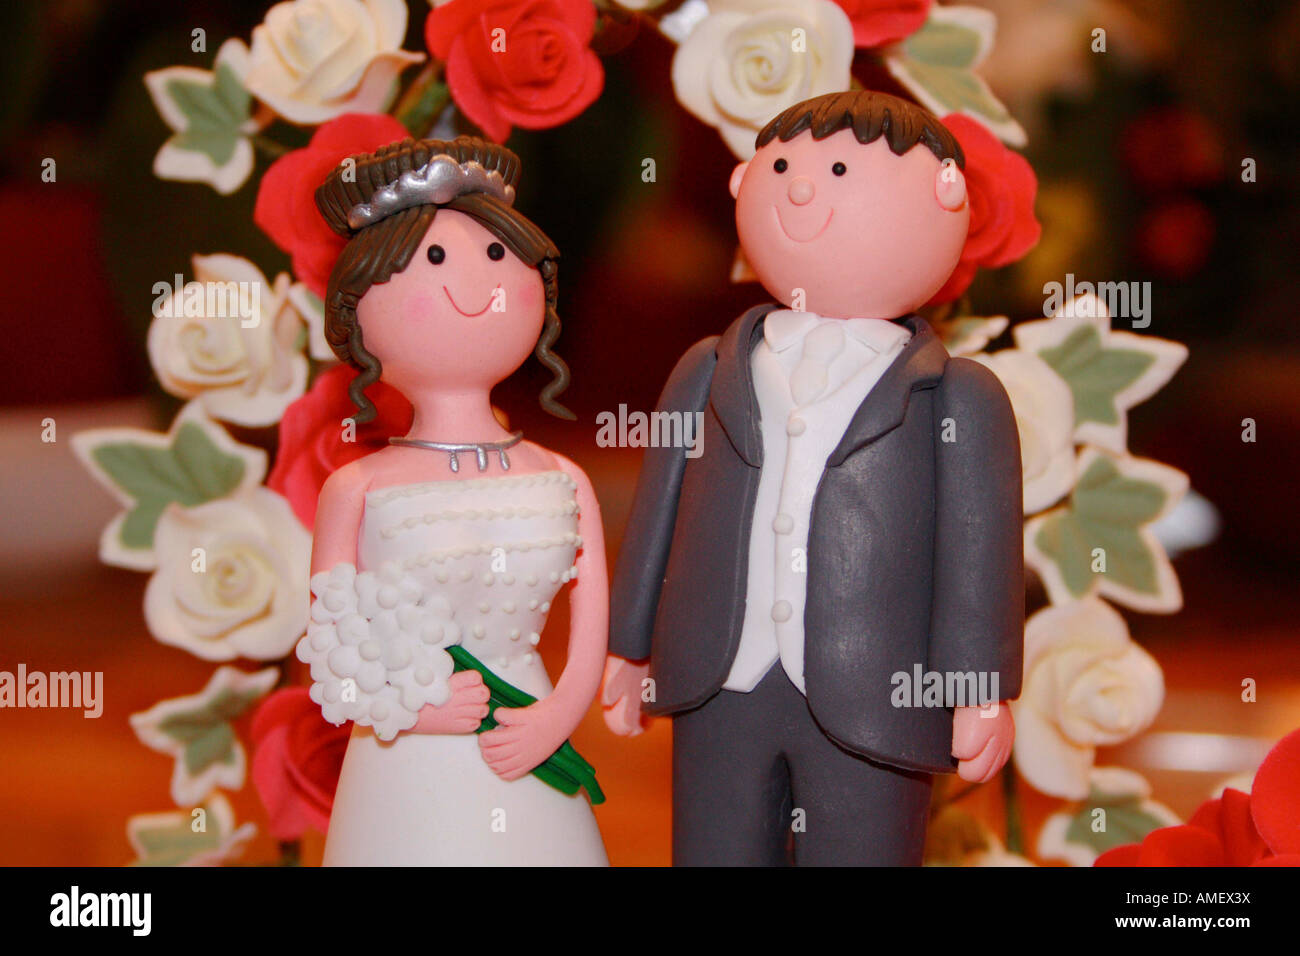 Bride and groom on top of a wedding cake Stock Photo